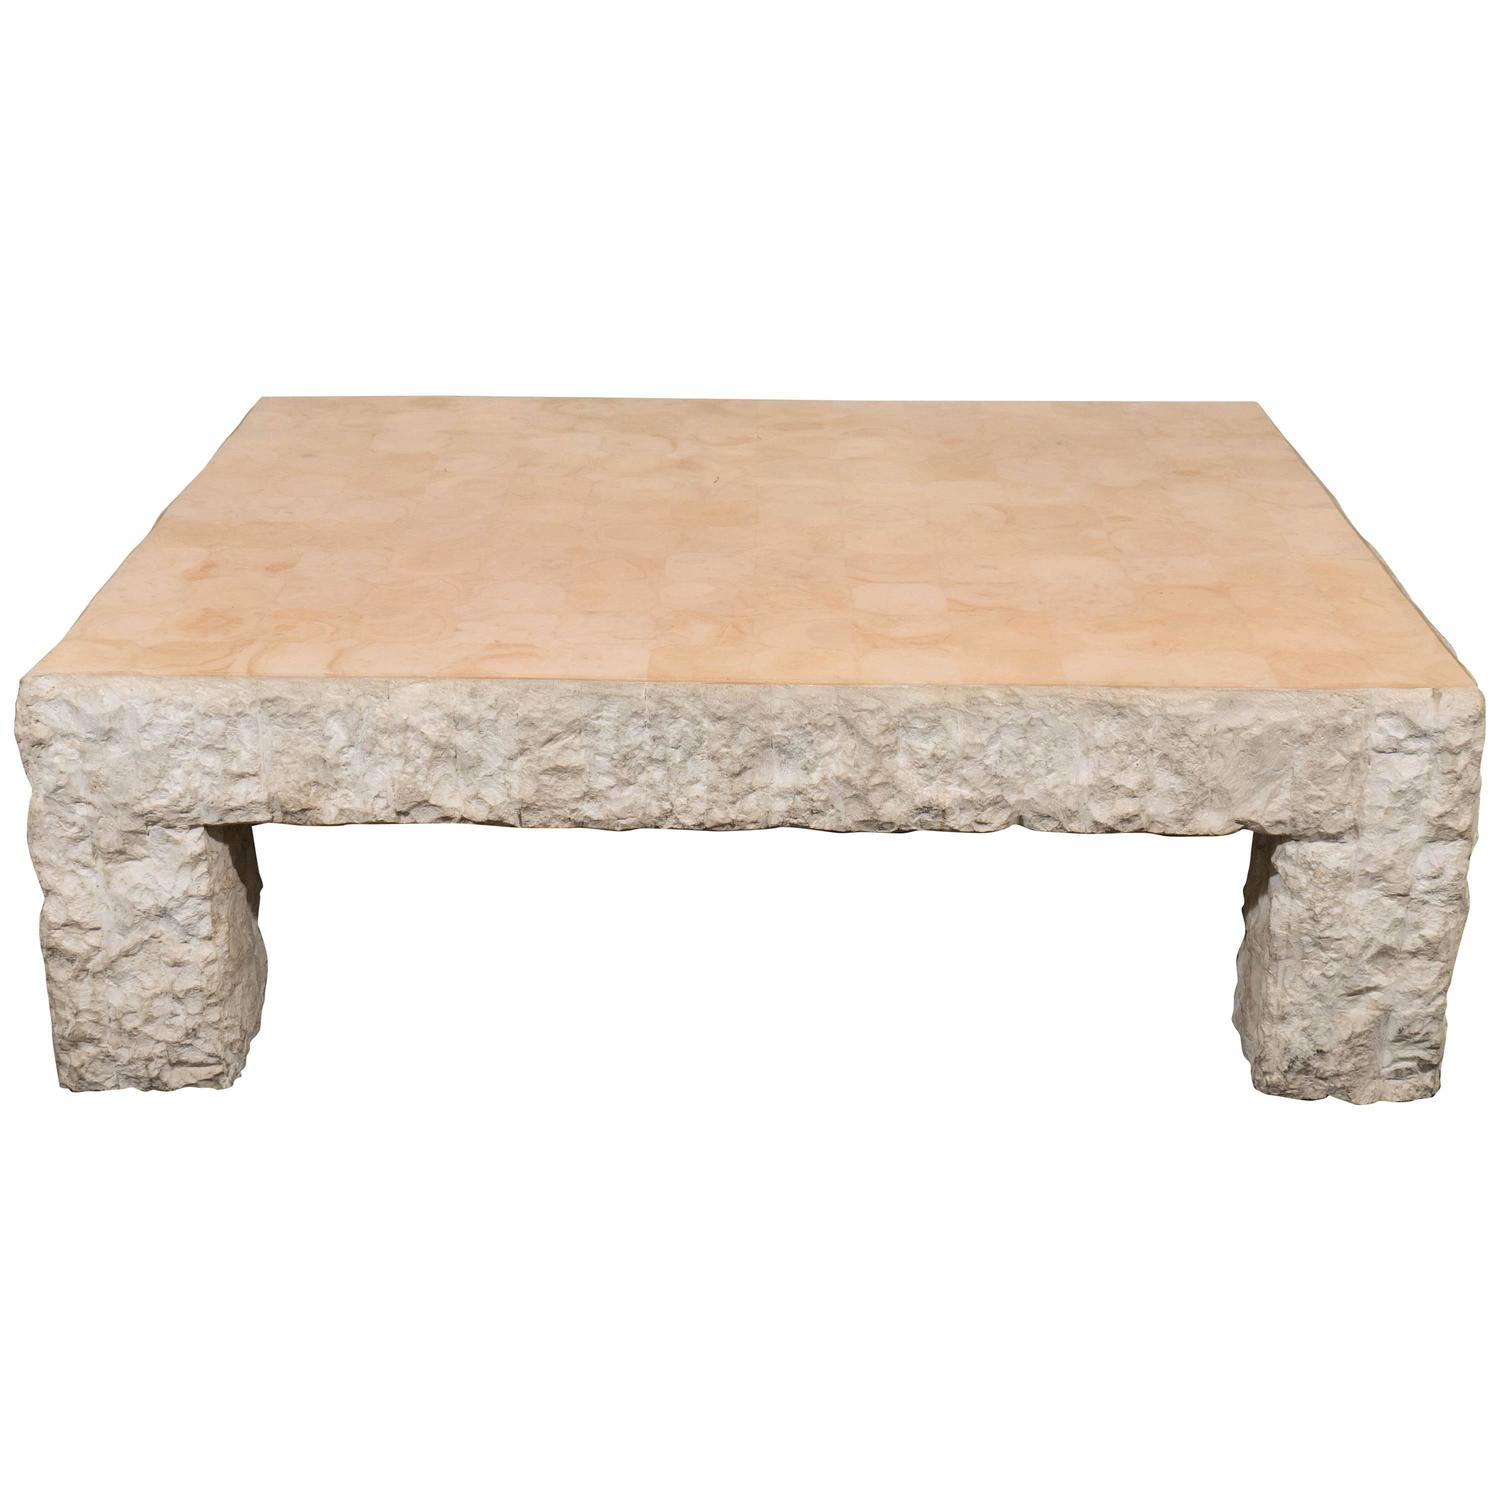 Maitland Smith Rough Edge Travertine Coffee Table at 1stdibs